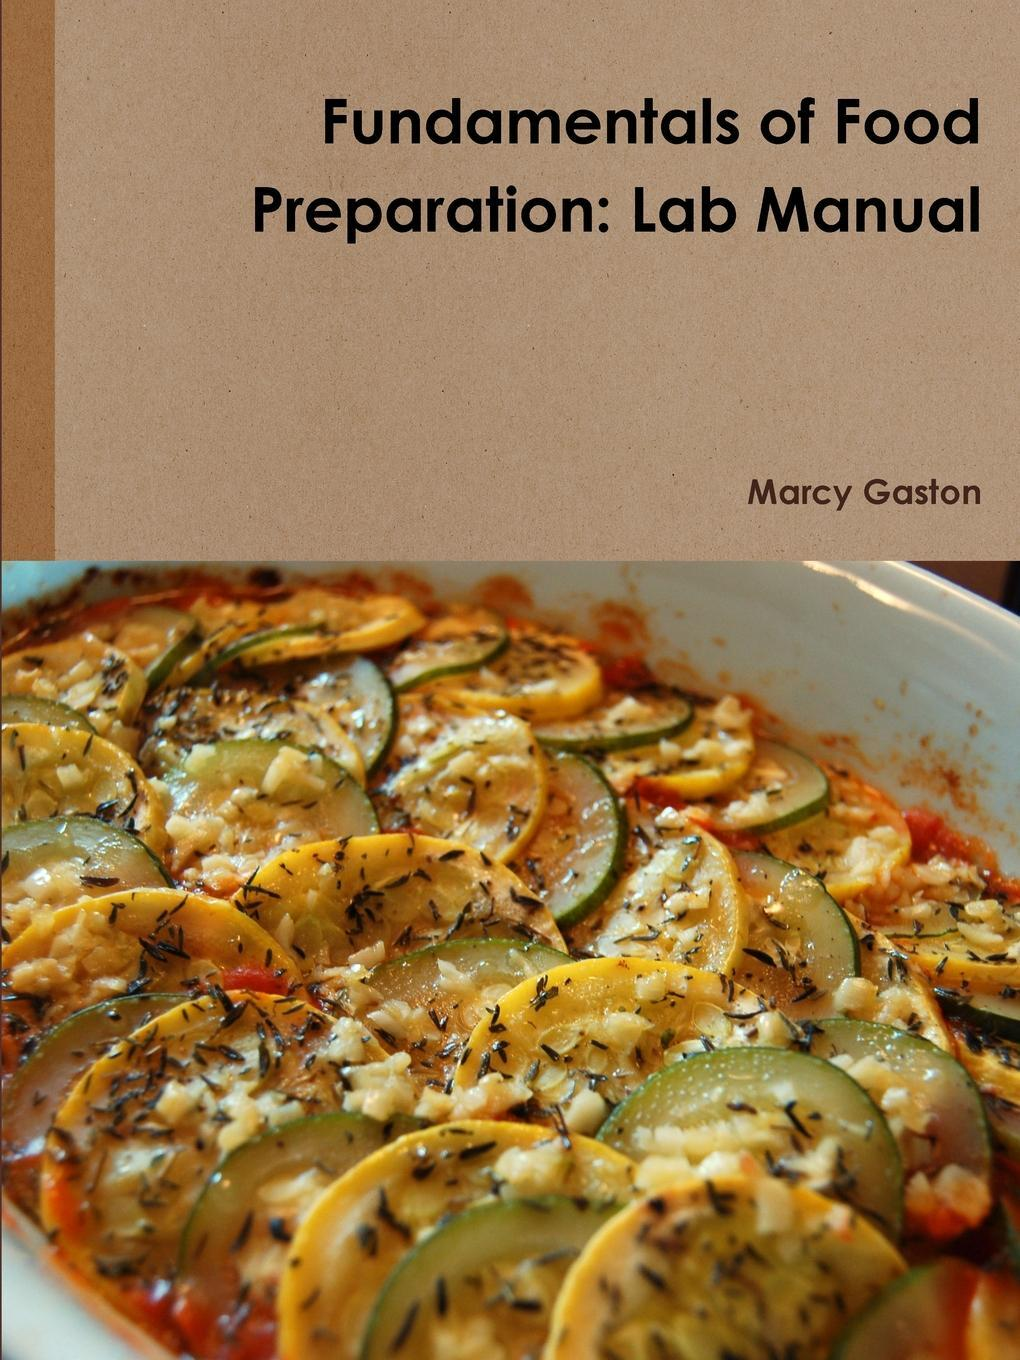 Fundamentals of Food Preparation. Lab Manual